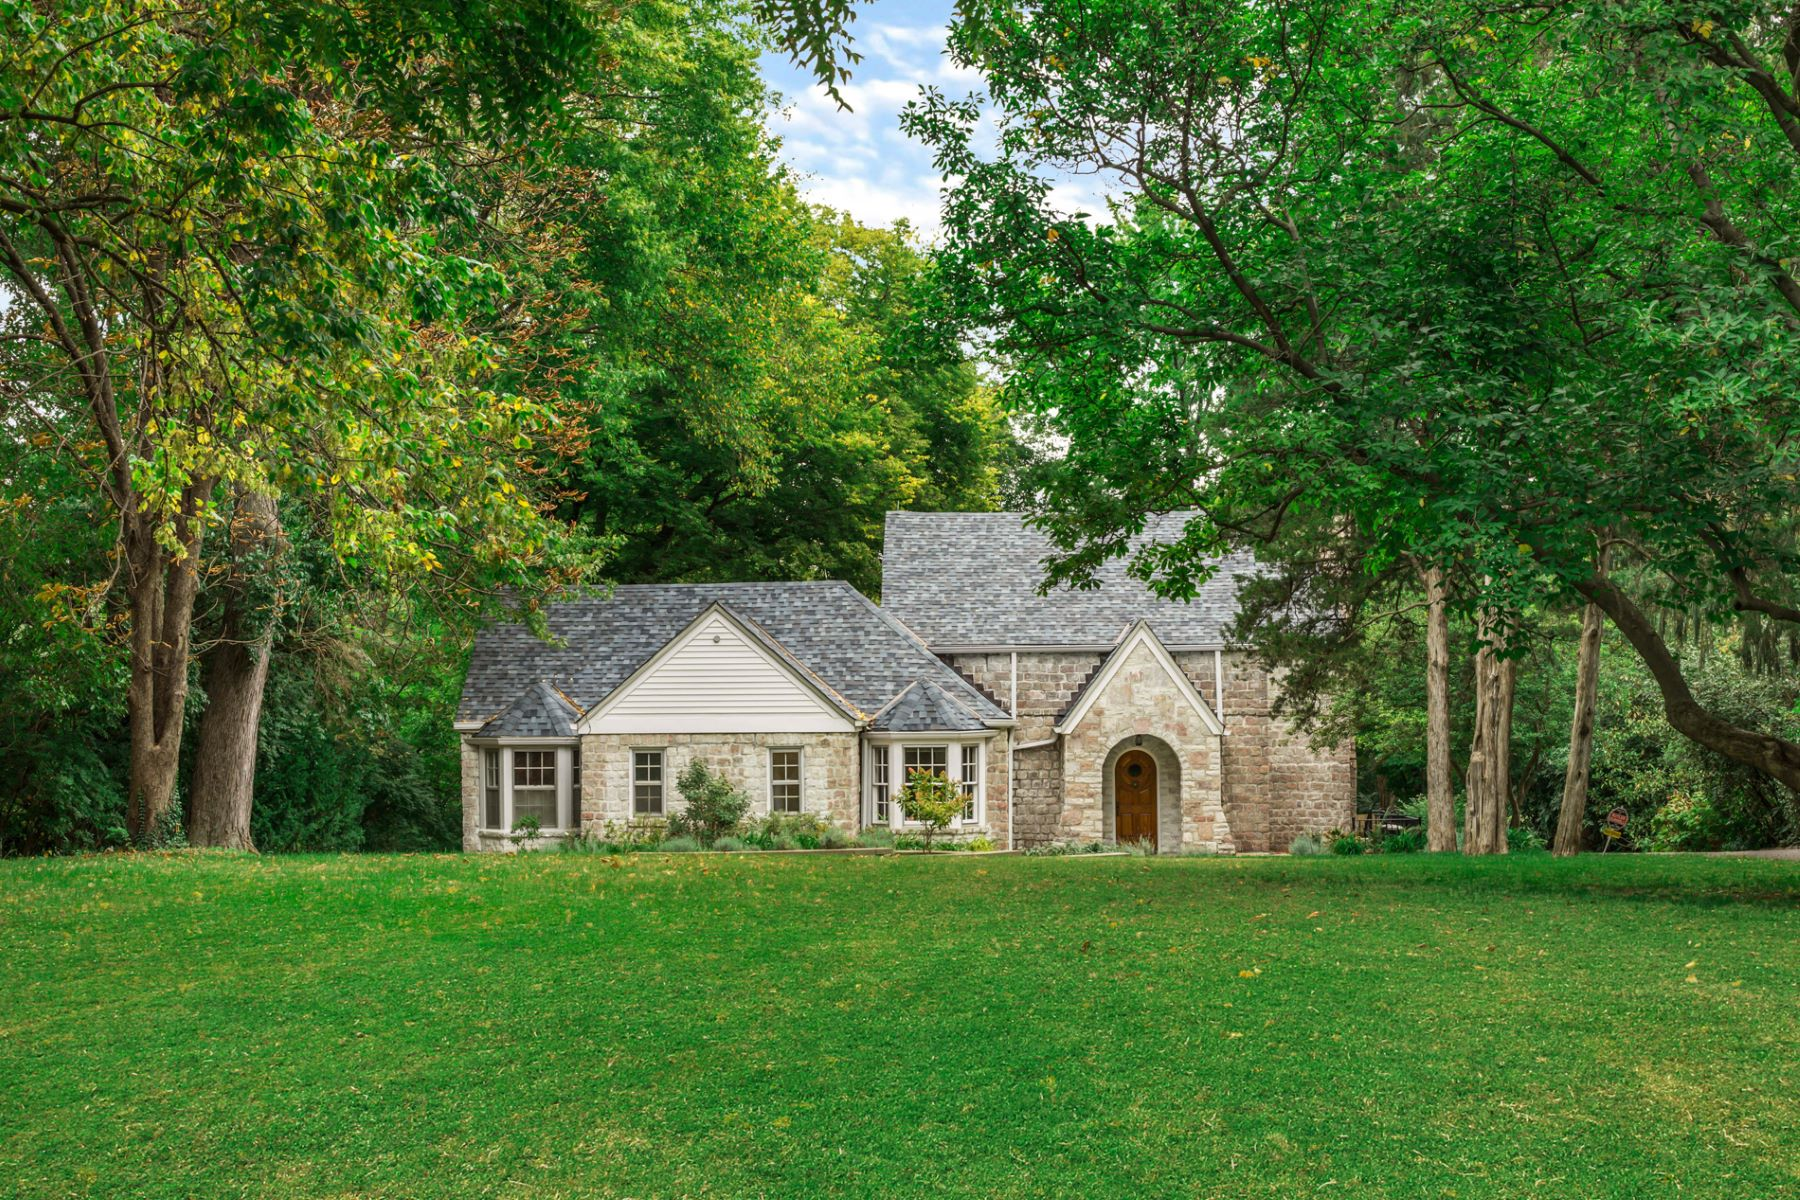 Single Family Home for Sale at Beautiful Stone House in Ladue 9117 Clayton Road Ladue, Missouri 63124 United States